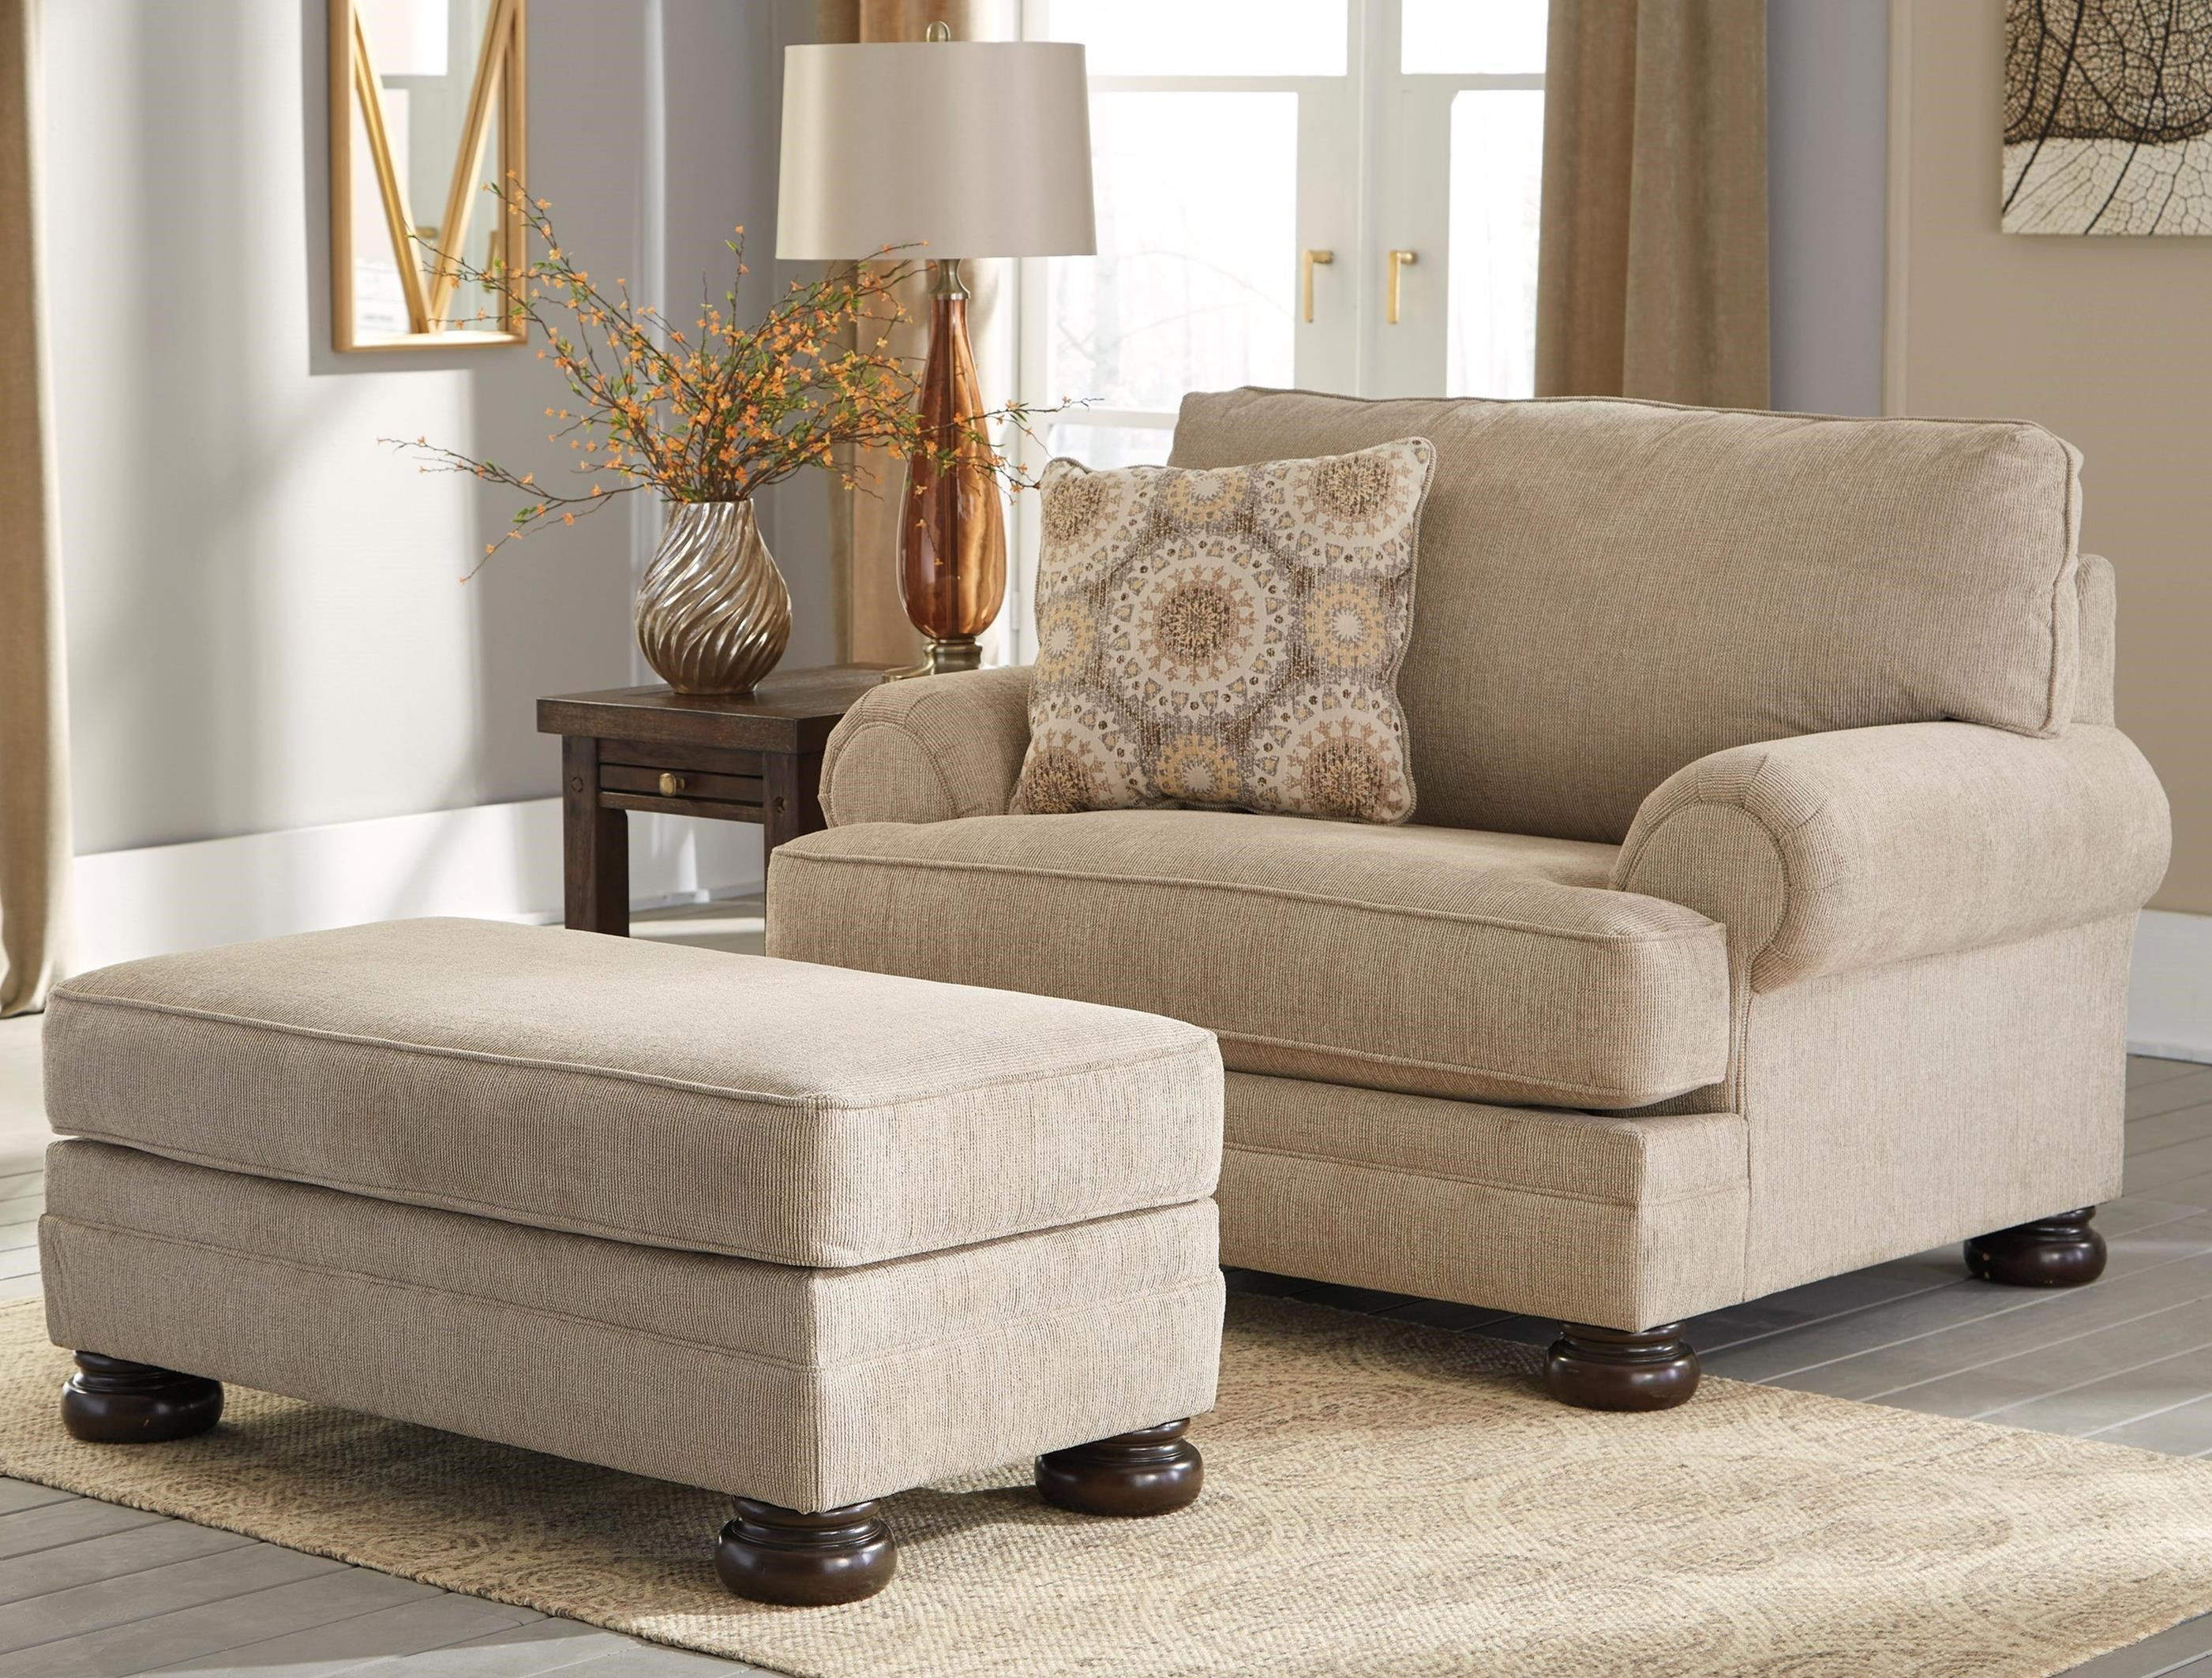 furnishings half store sparks homestore a with m axiom signature design browsecatalog and by products walnut home ottoman upholstered ashley chair direct